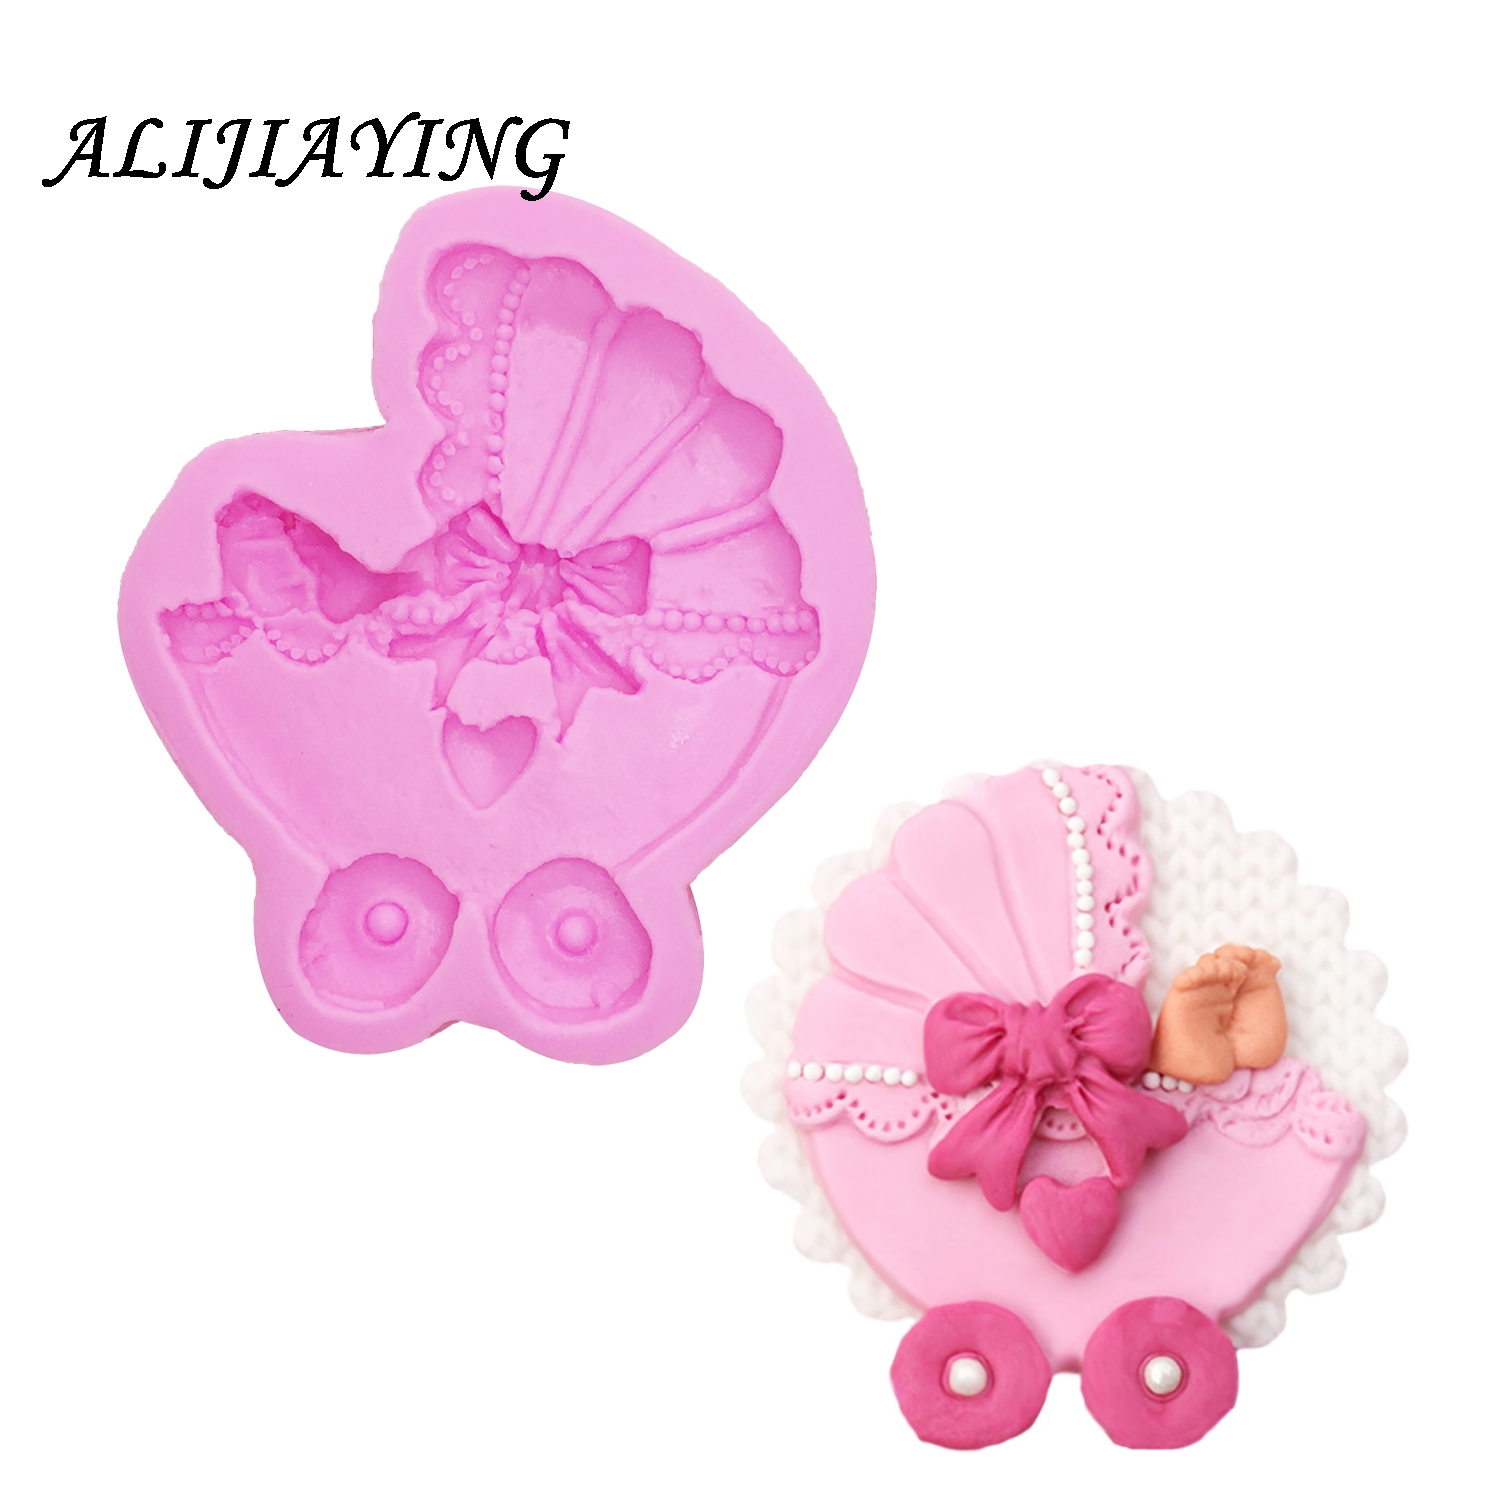 1Pcs Lovely Baby carriage Shape For Silicone Cake Molds Fondant Cake Decorate baby shower favour gifts D0911 in Cake Molds from Home Garden